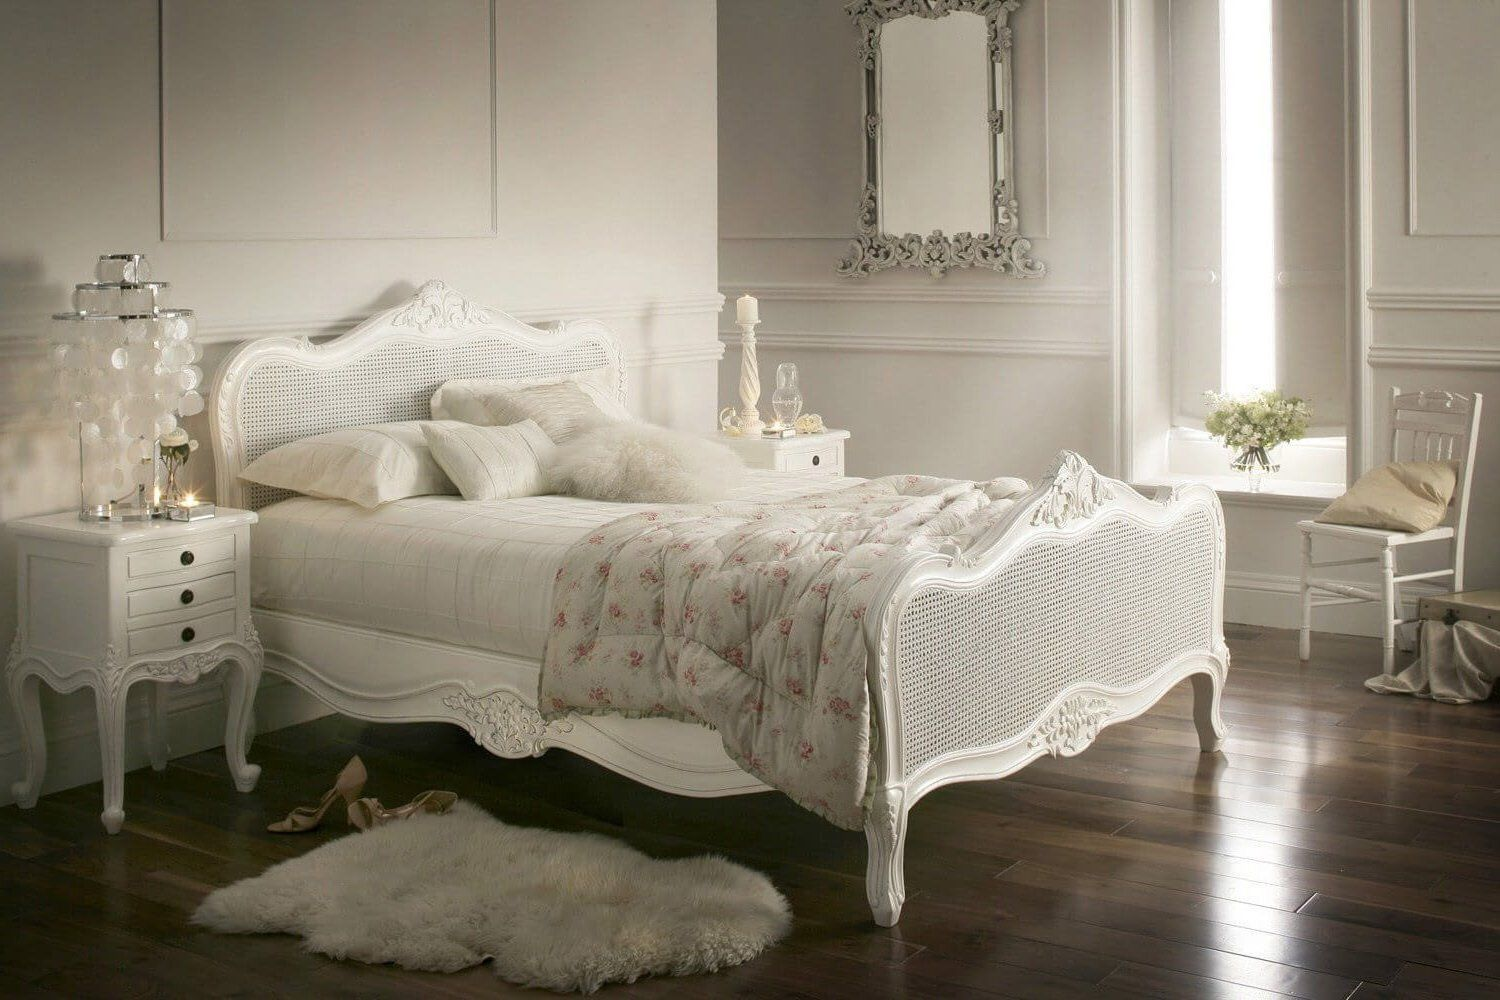 Fabulous White Wicker Bedroom Furniture White wooden bed